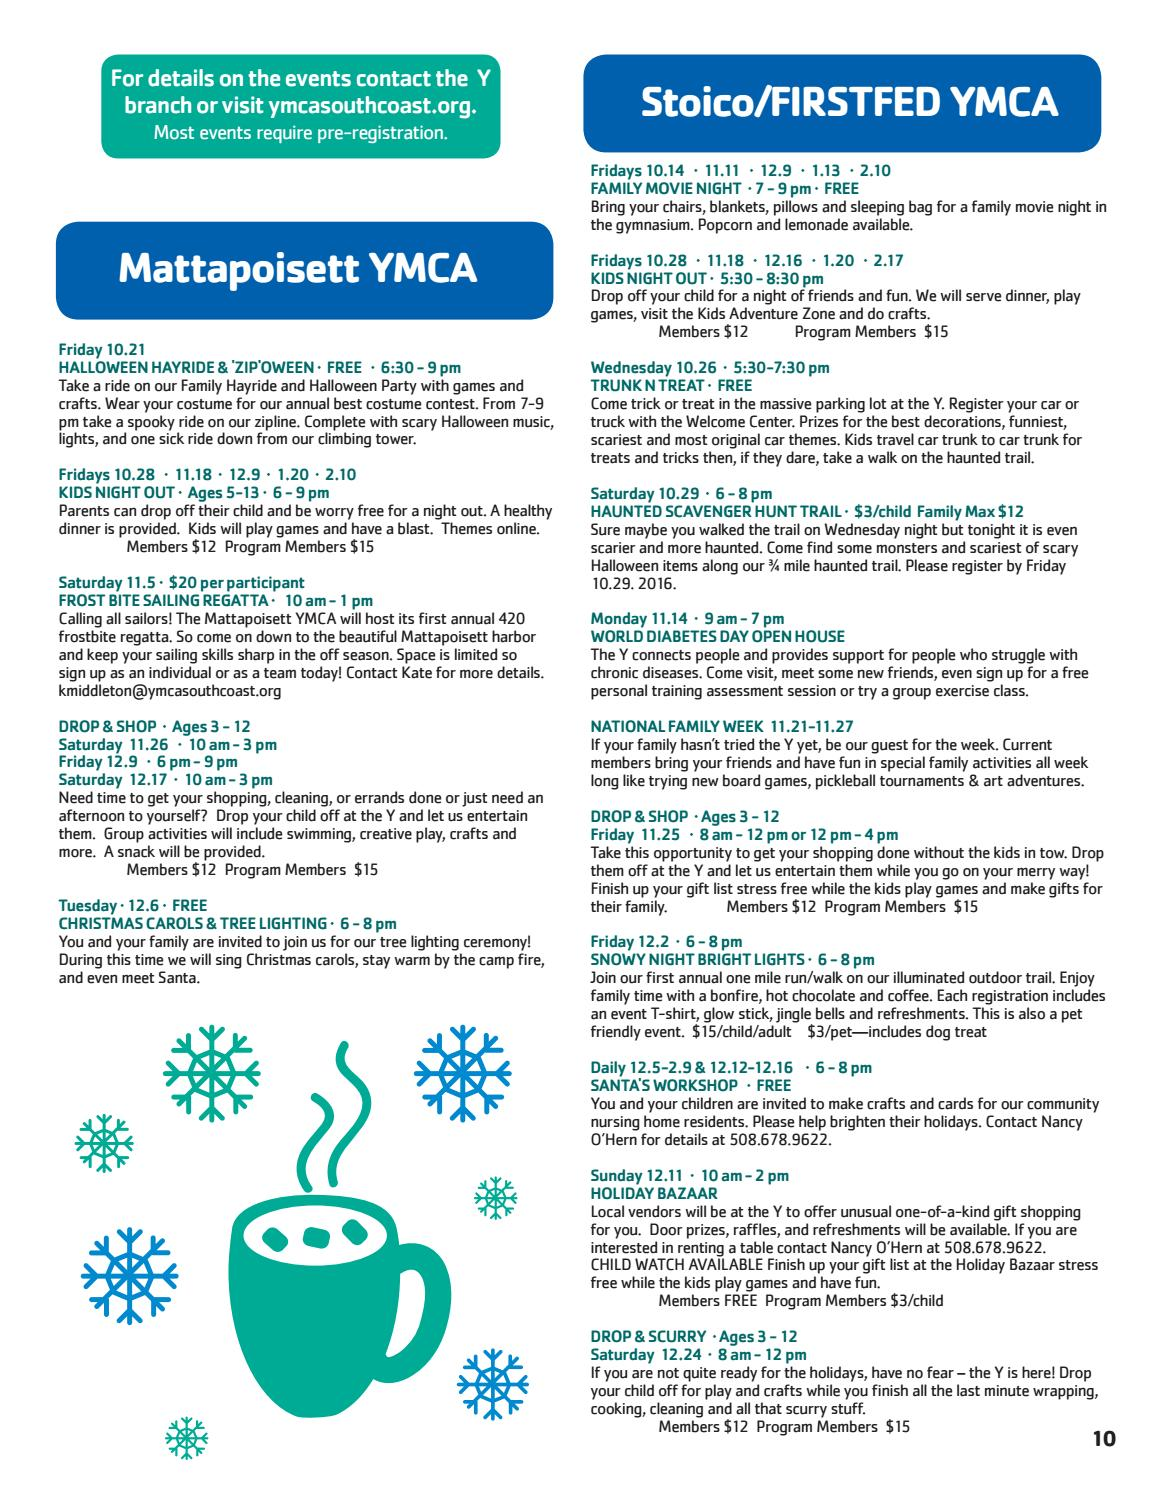 2016 17 fall winter program guide by ymca southcoast issuu solutioingenieria Gallery